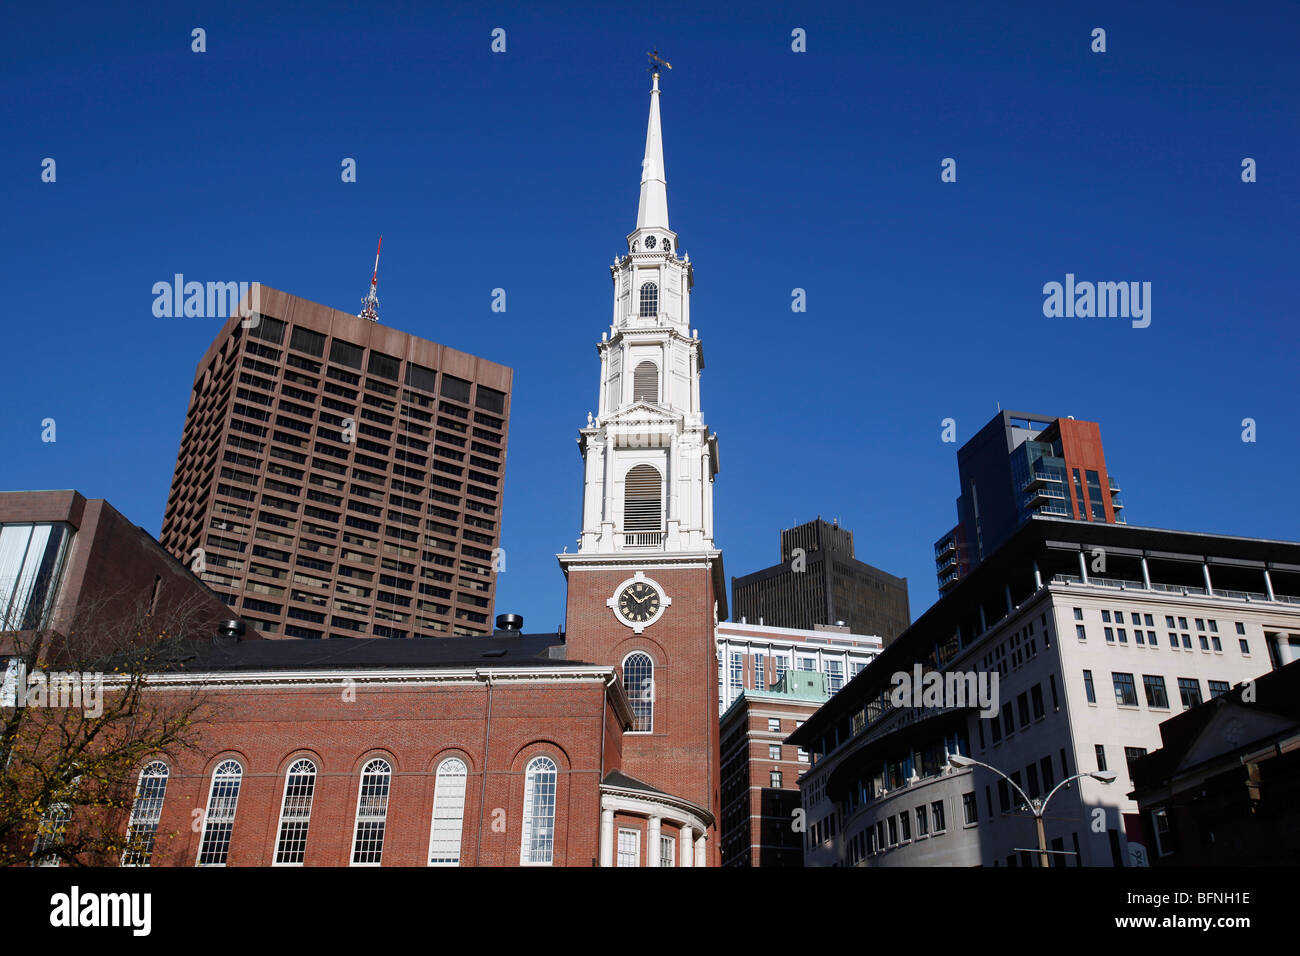 st stephens church in boston massachusetts essay Login - contact - facebook serving the communities of hermitage, old hickory, and mt juliet, tennessee 14544 lebanon road ♦ old hickory, tn 37138 ♦ office: (615) 758-2424 ♦ fax: (615) 754-0043.